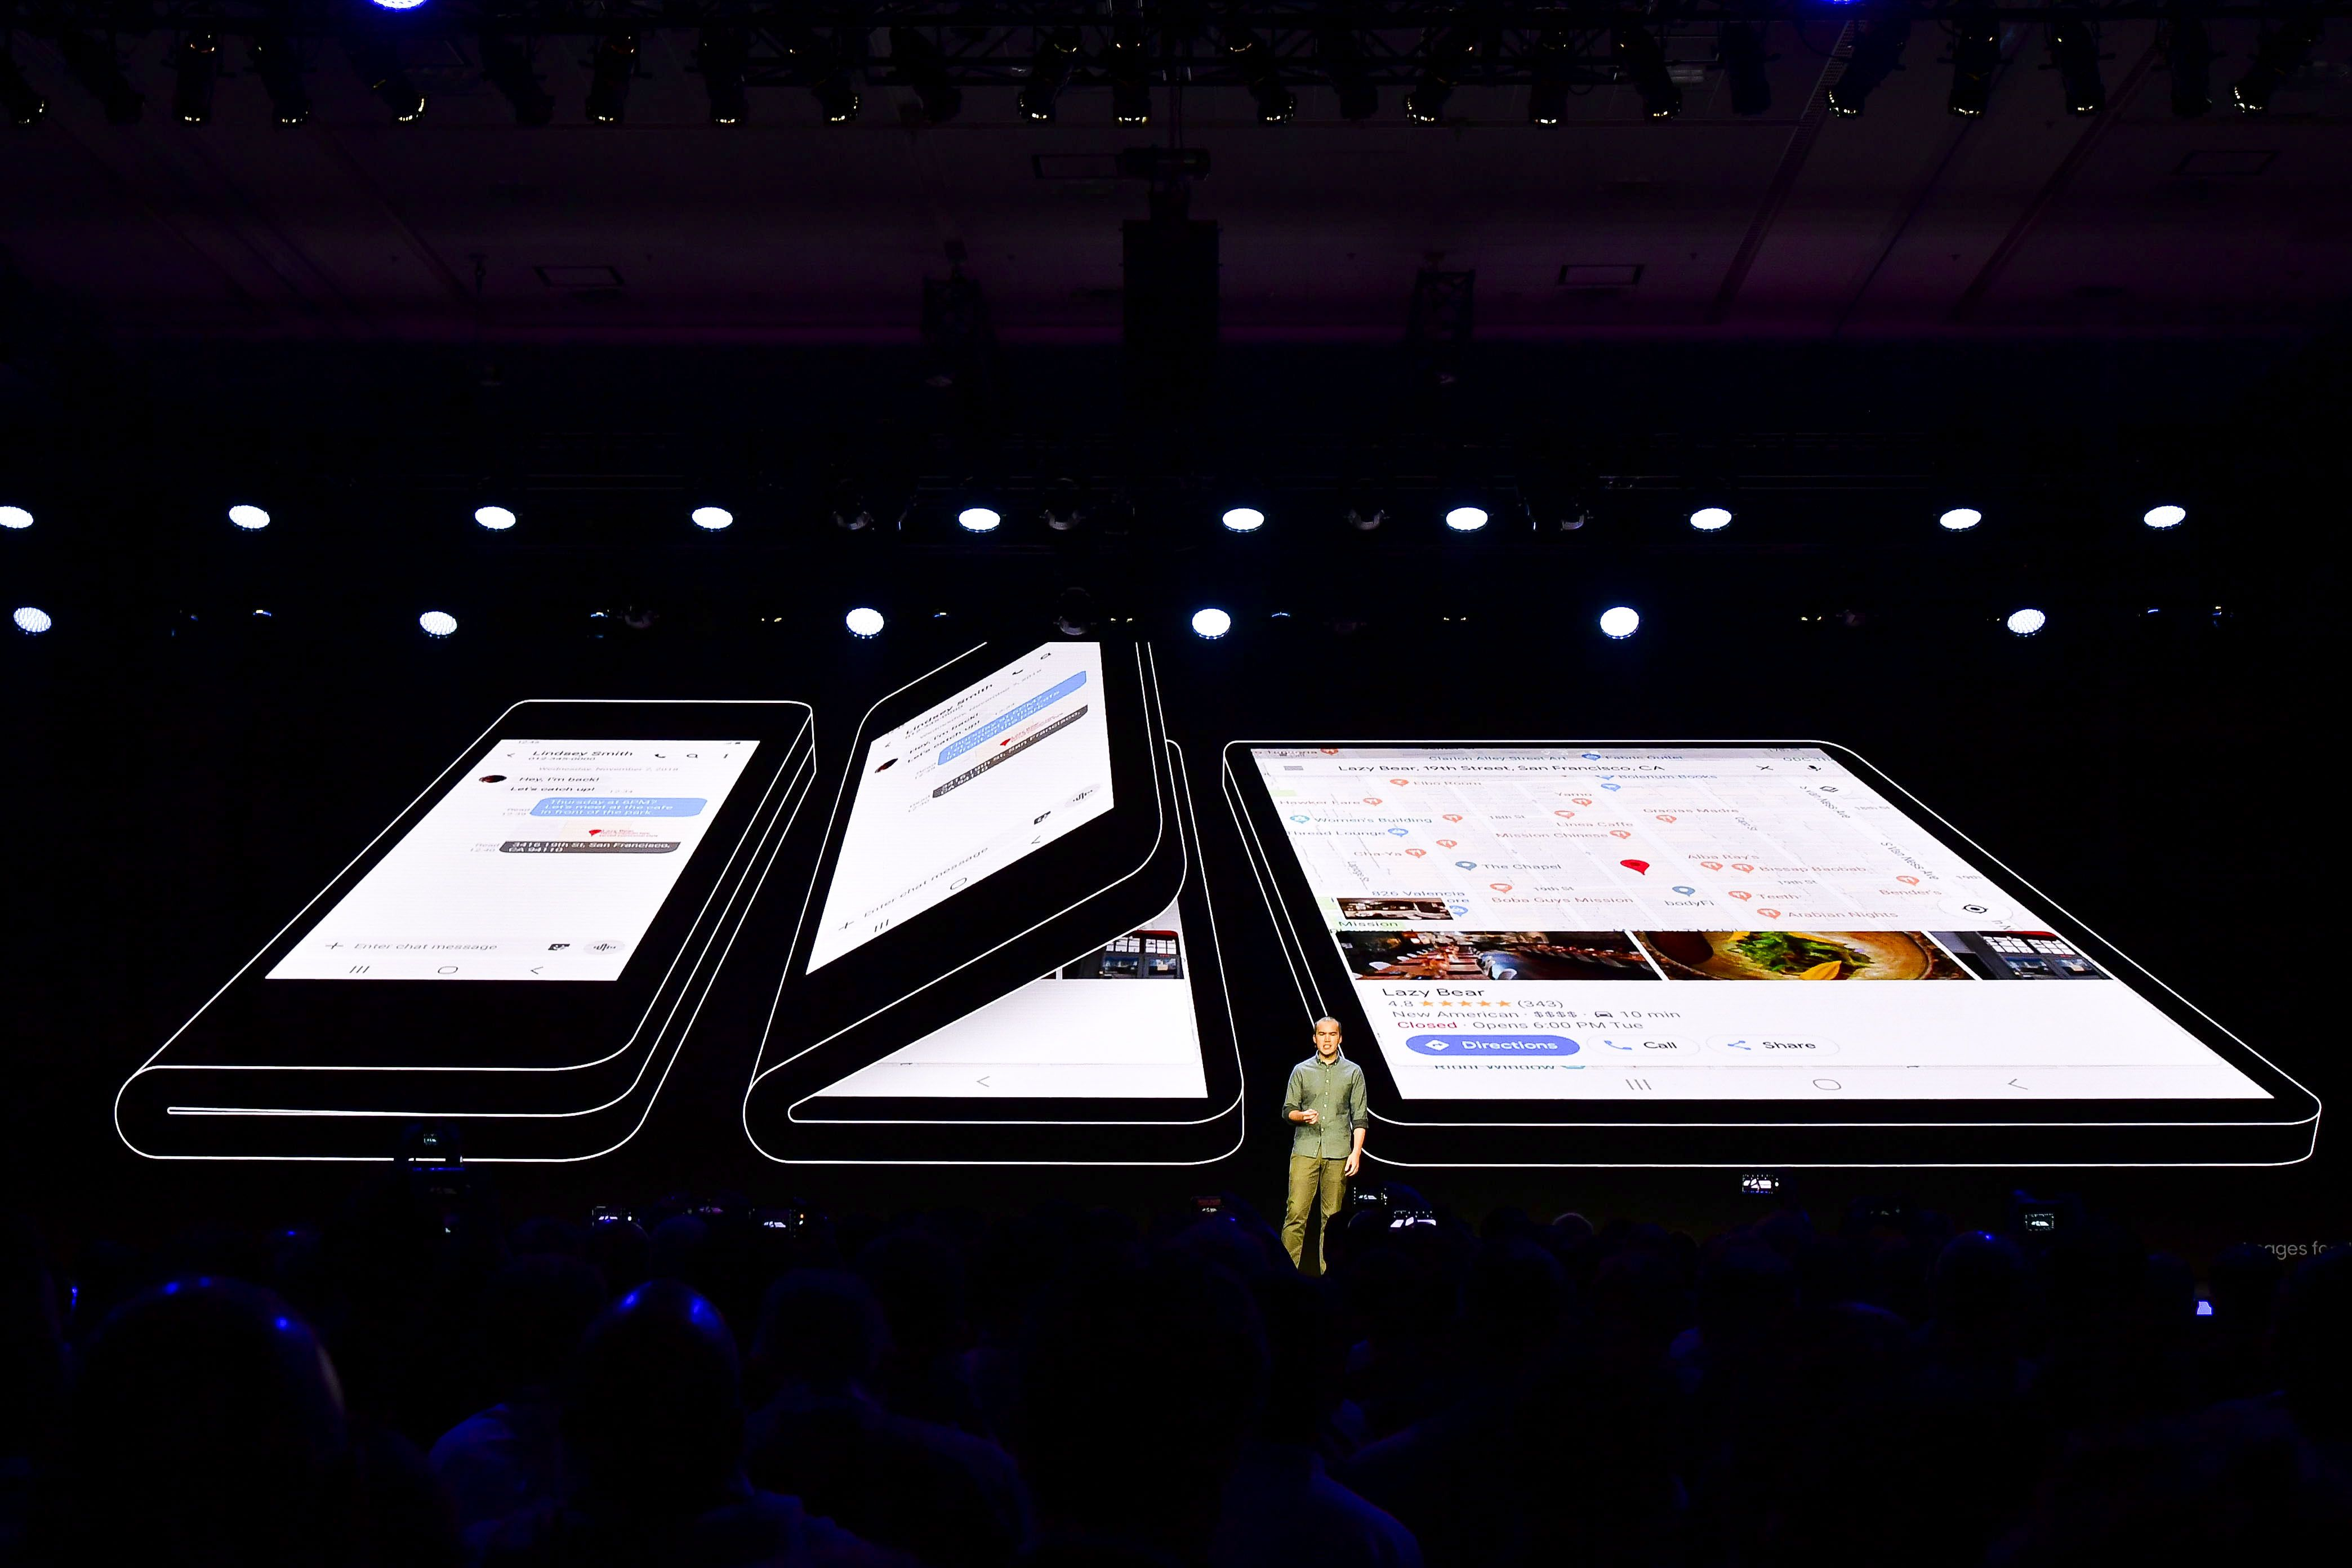 Design sketches of the Samsung Foldable phone shown on-screen at the 2018 Samsung Developers Conference